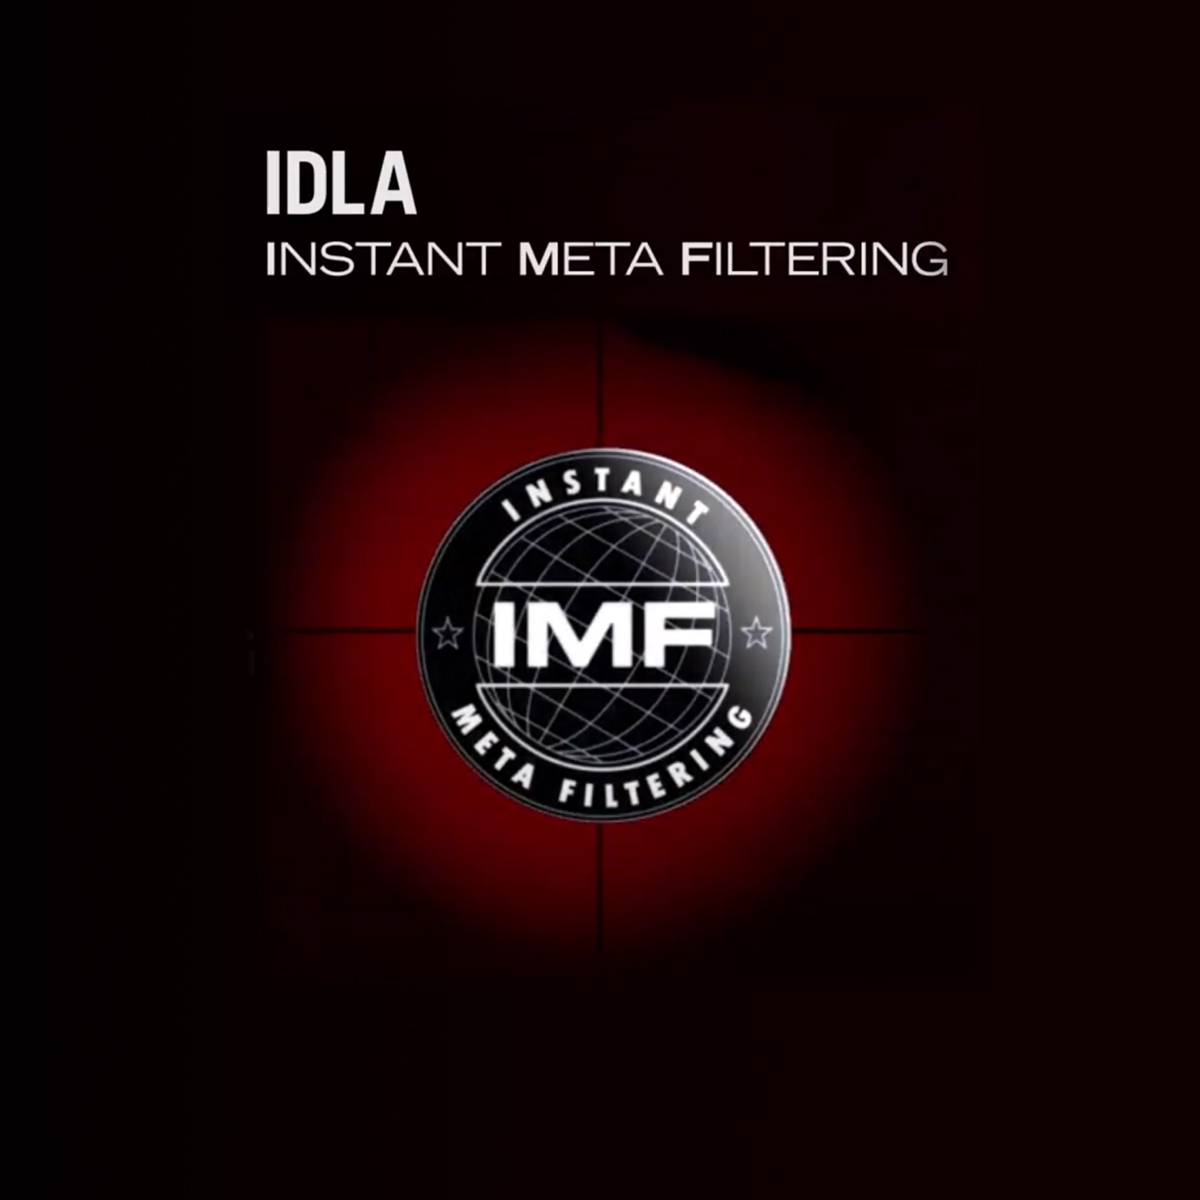 Catch That Motorcycle Thief! IDIS Instant Meta-Data Filtering in Action